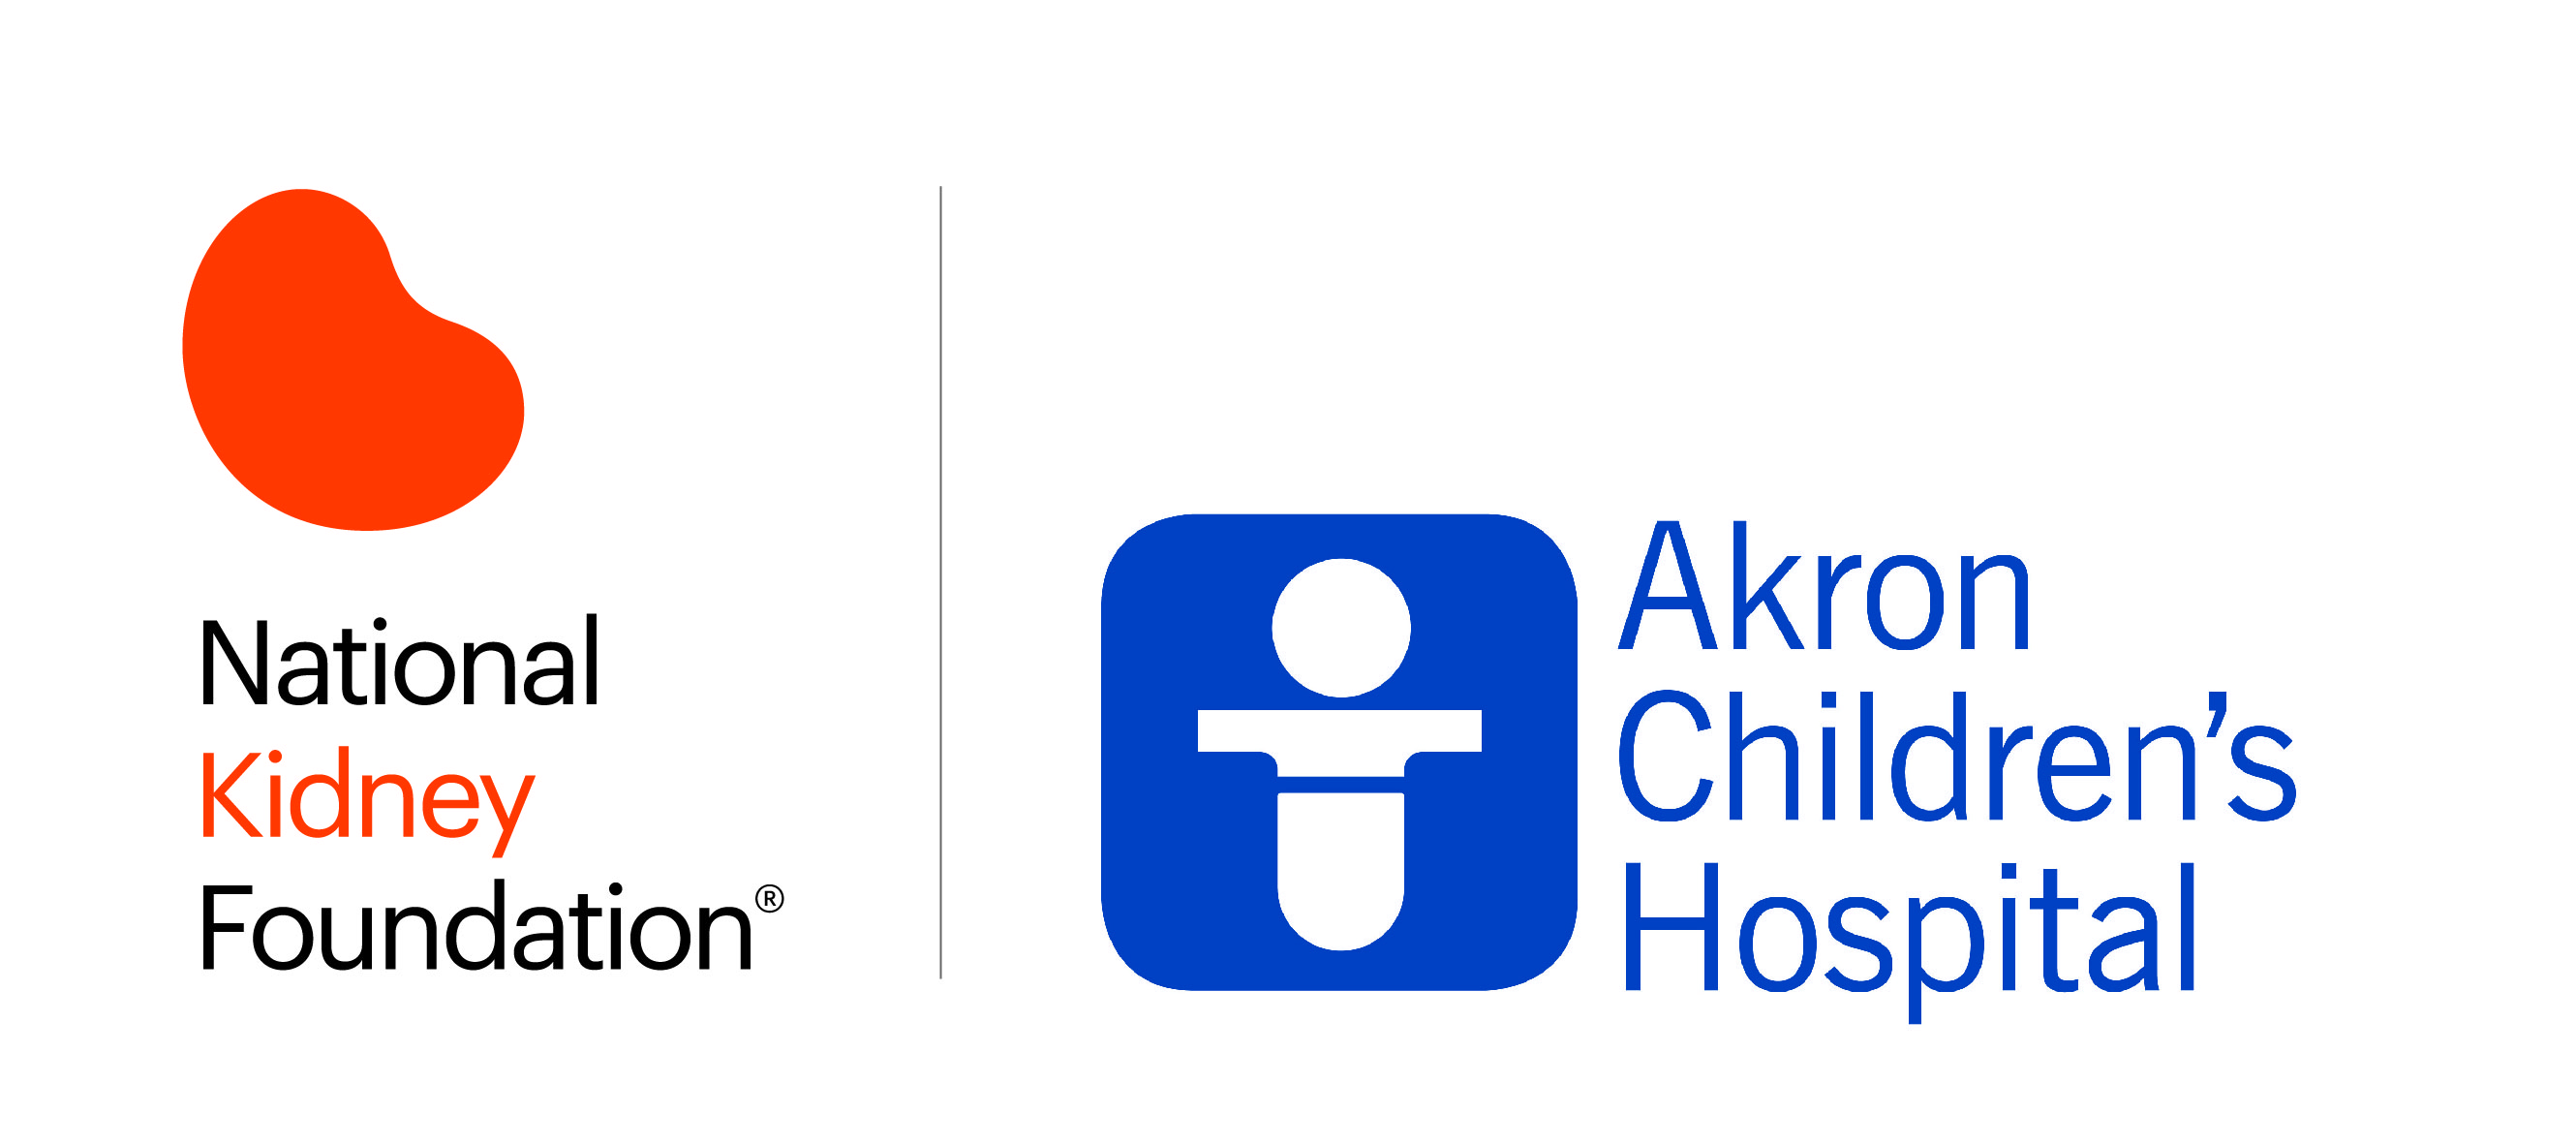 NKF logo beside the logo for Akron Children's Hospital